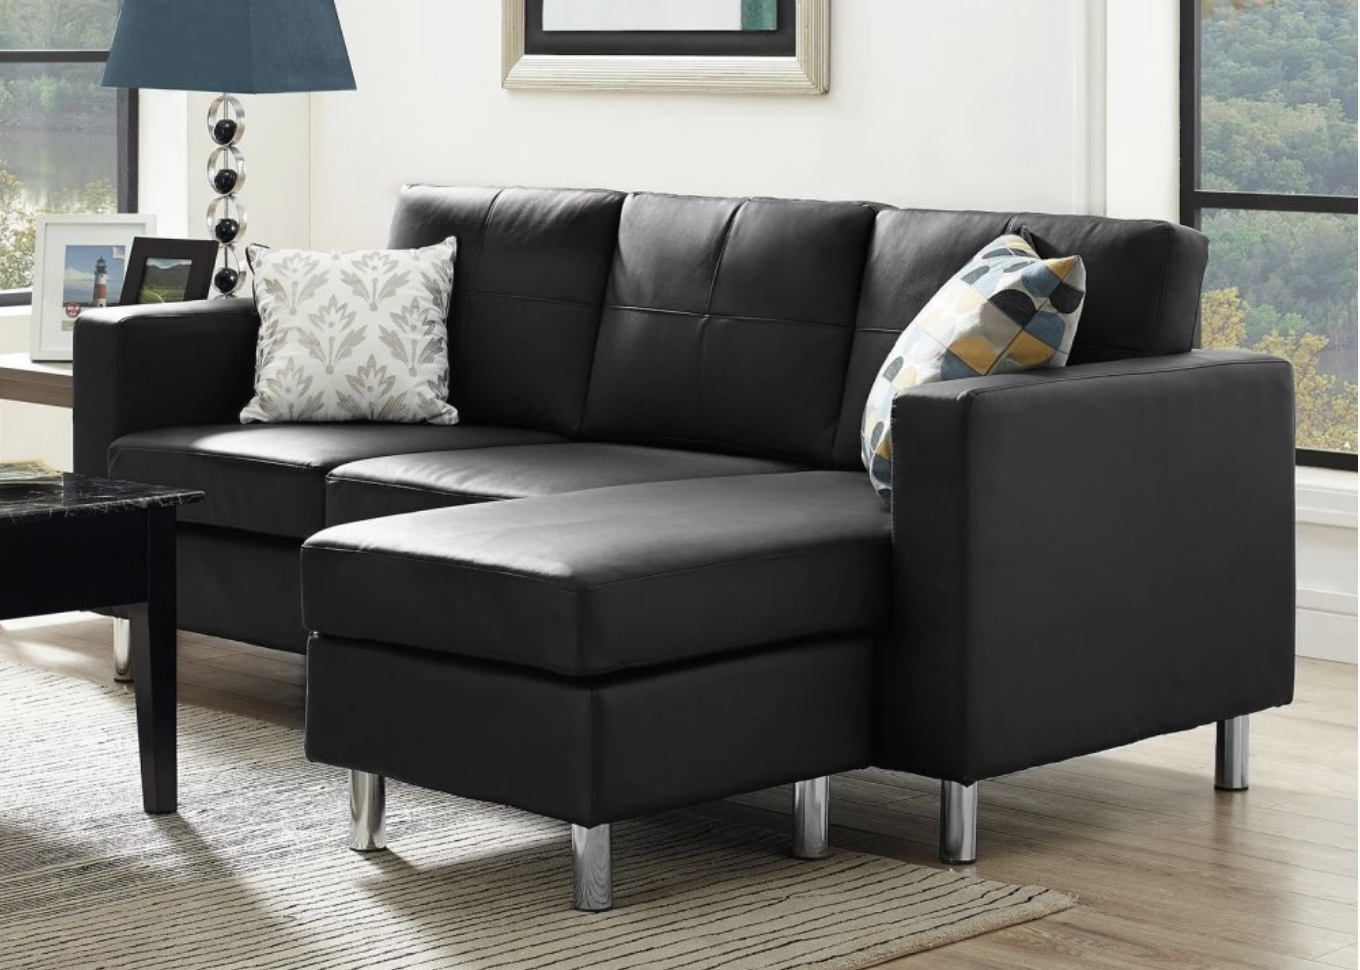 Recent 100X100 Sectional Sofas In 75 Modern Sectional Sofas For Small Spaces (2018) (View 10 of 15)